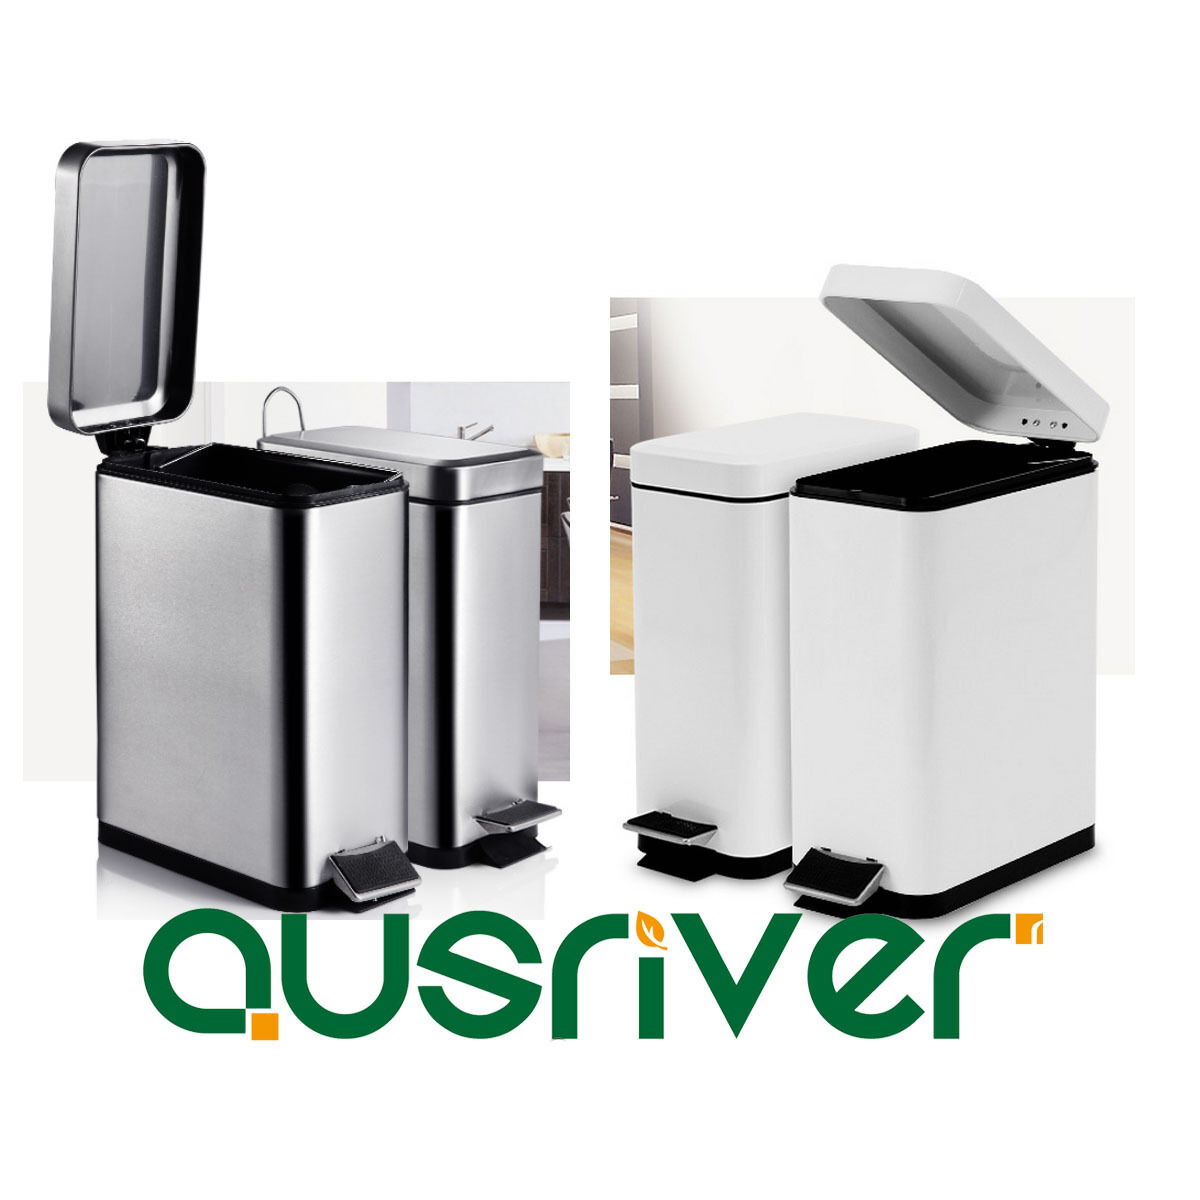 10L Pedal Stainless Steel Rubbish Bin Home Kitchen Garbage Waste Trash Can